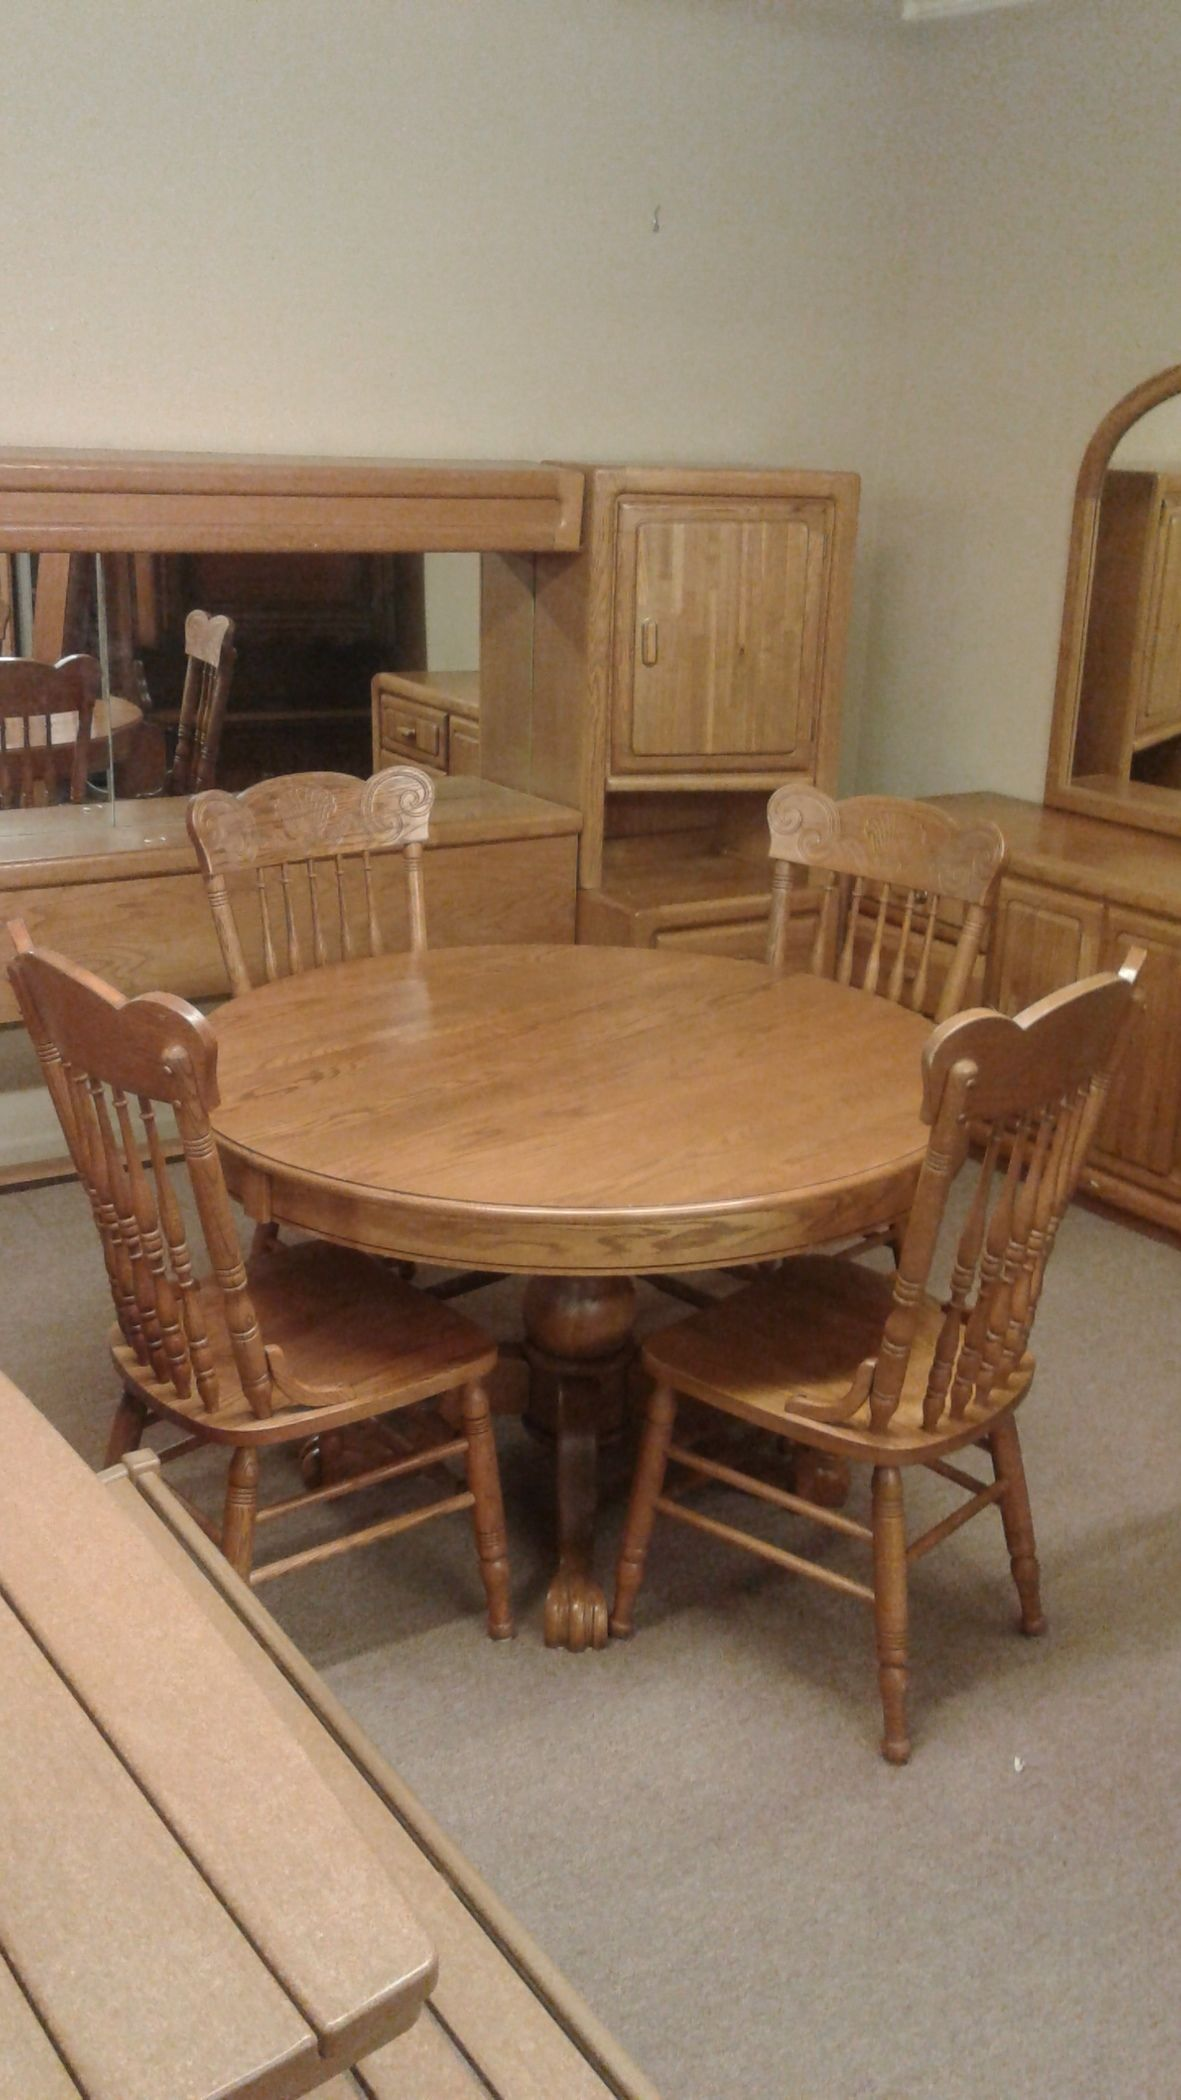 Keller Dining Table Amp 4 Chairs Delmarva Furniture